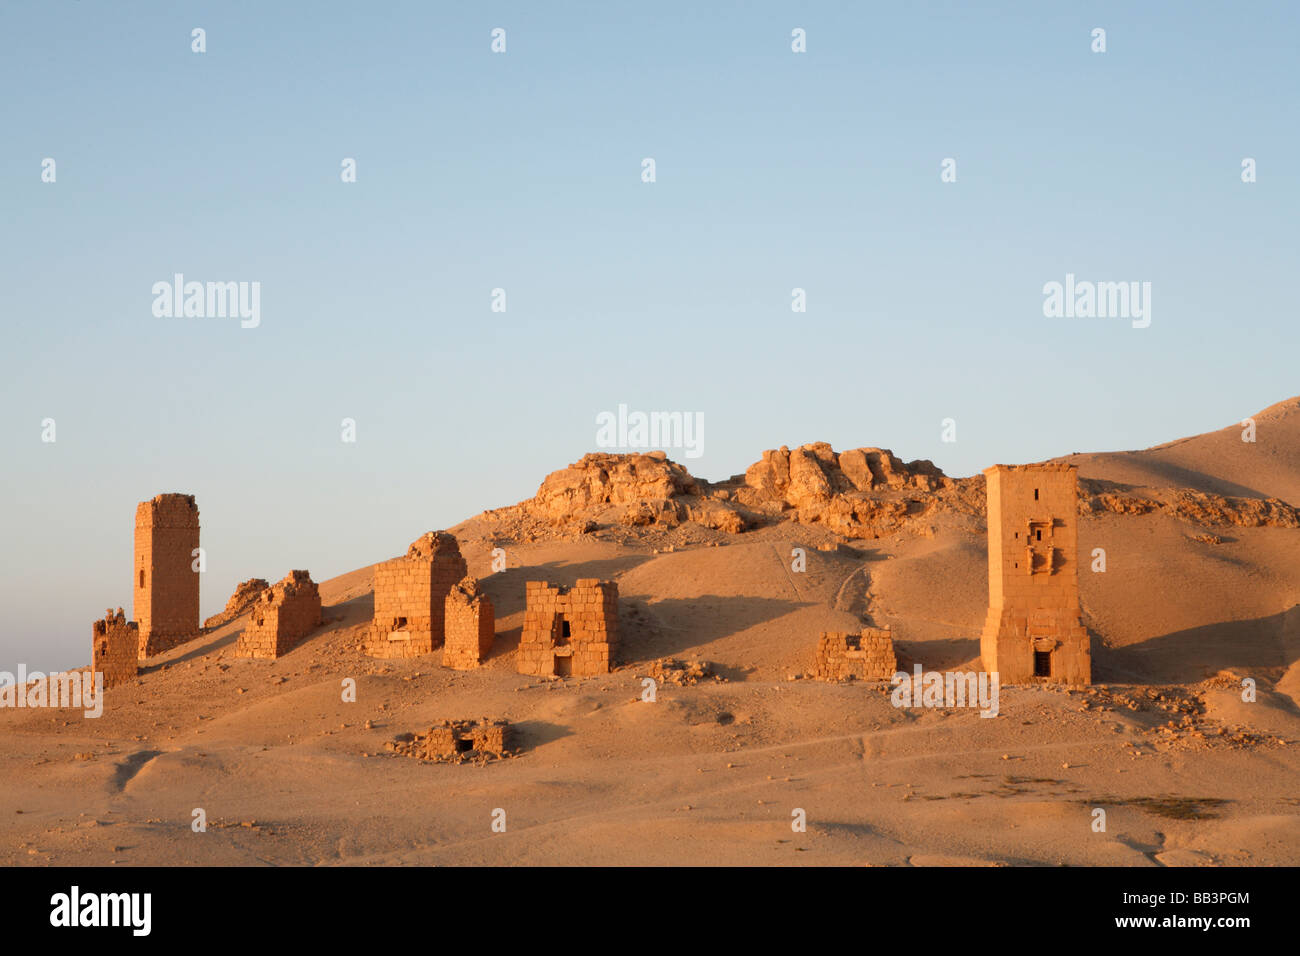 Valley of the Tombs, Palmyra Syria - Stock Image